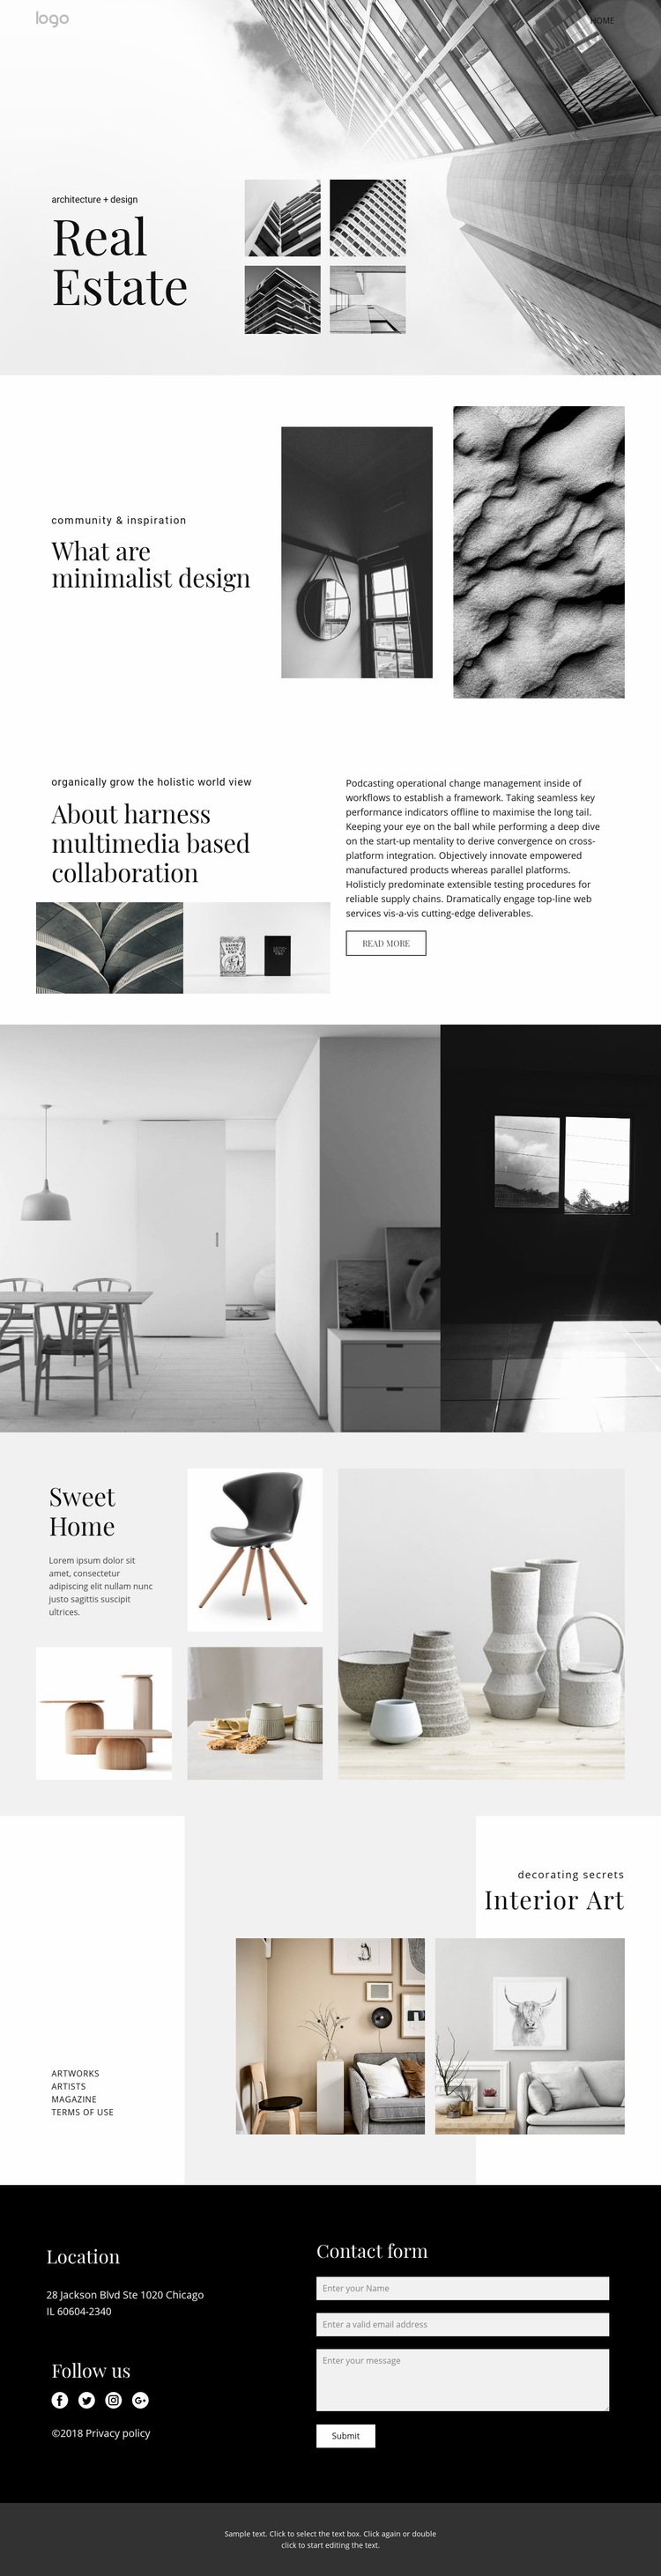 Real estate agency for people Web Page Design